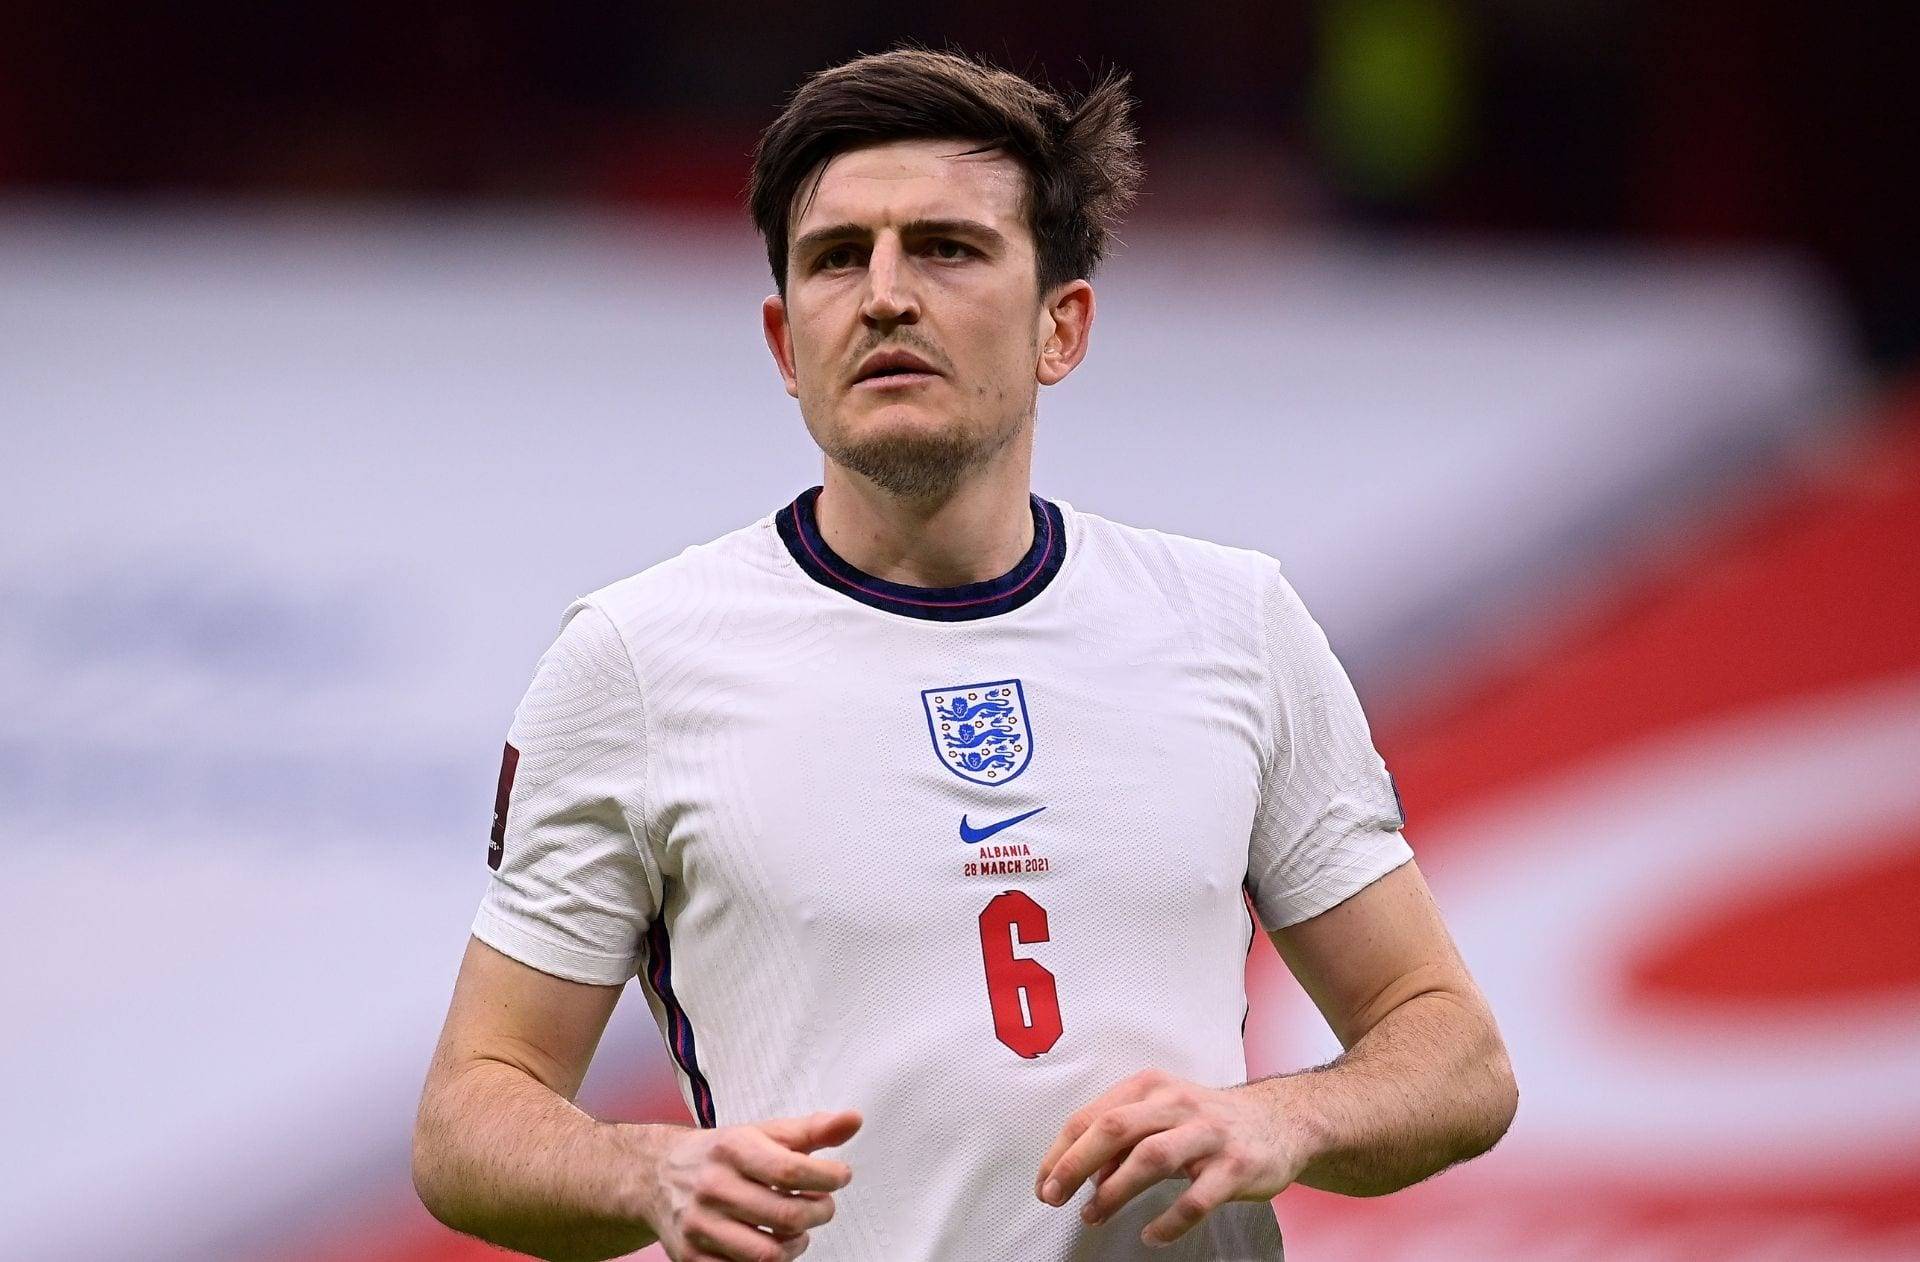 Harry Maguire - England